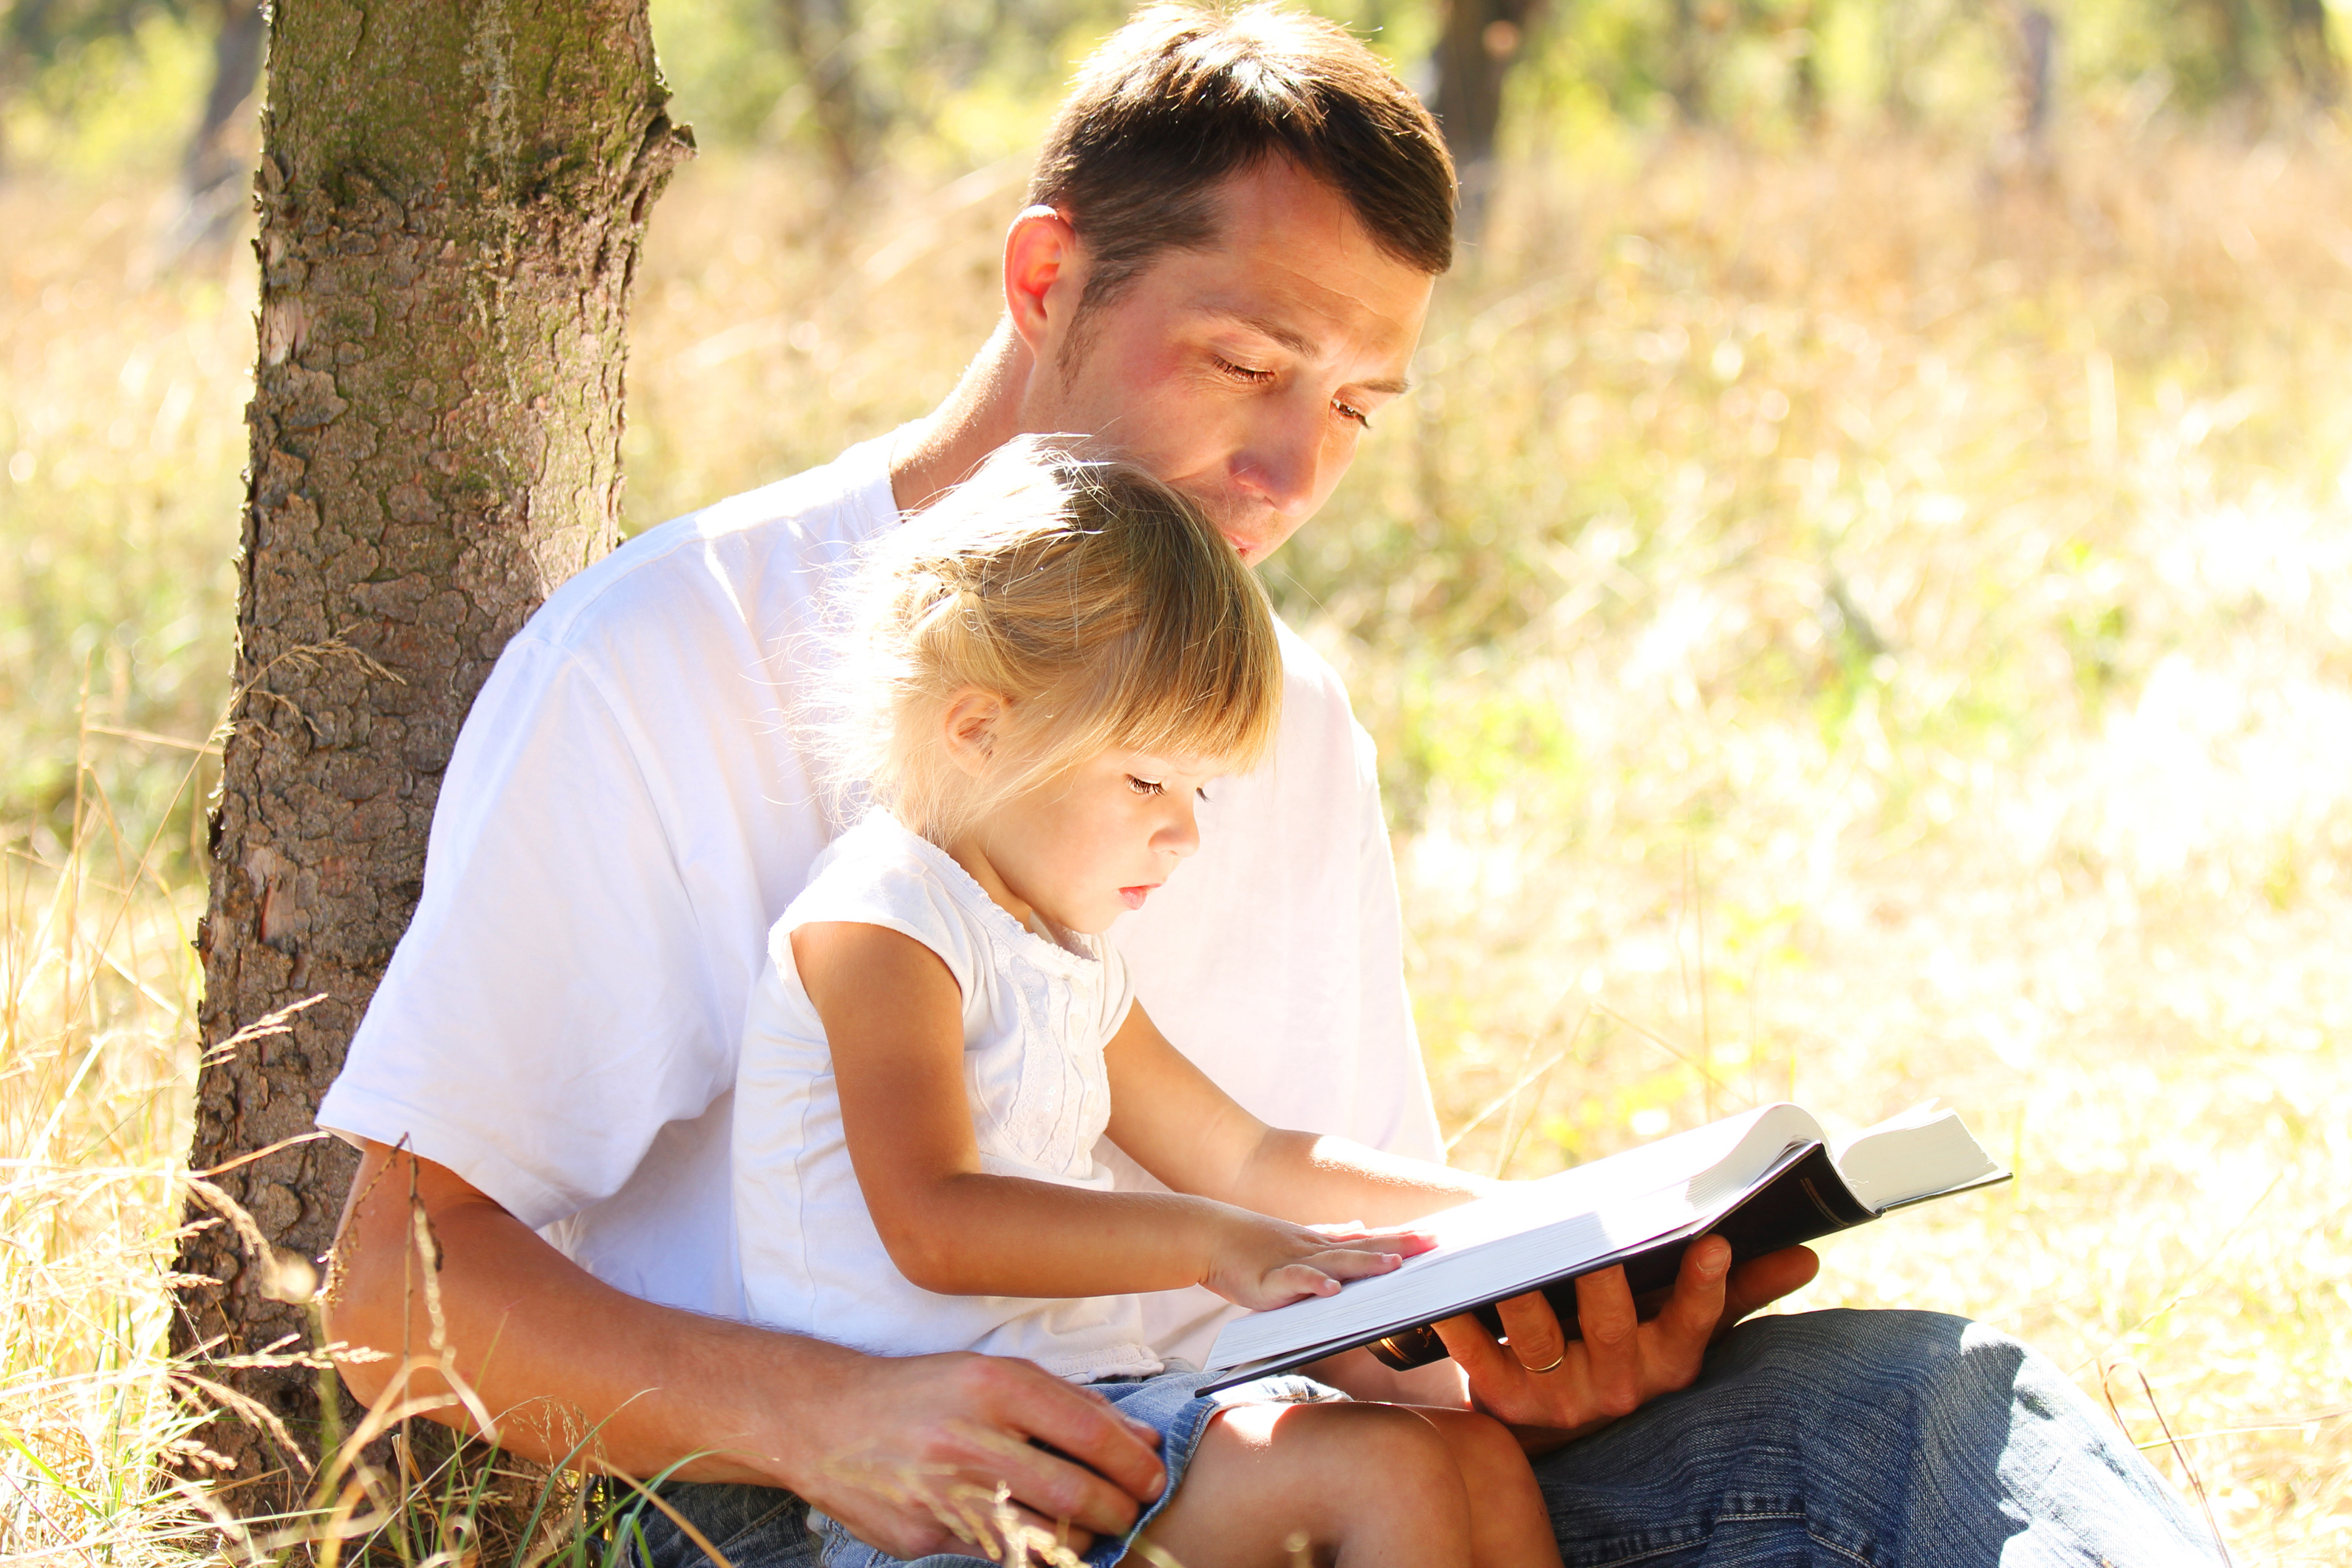 Impact Your Child's Life - Key Concepts For Building Healthy Parent-Child Relationships